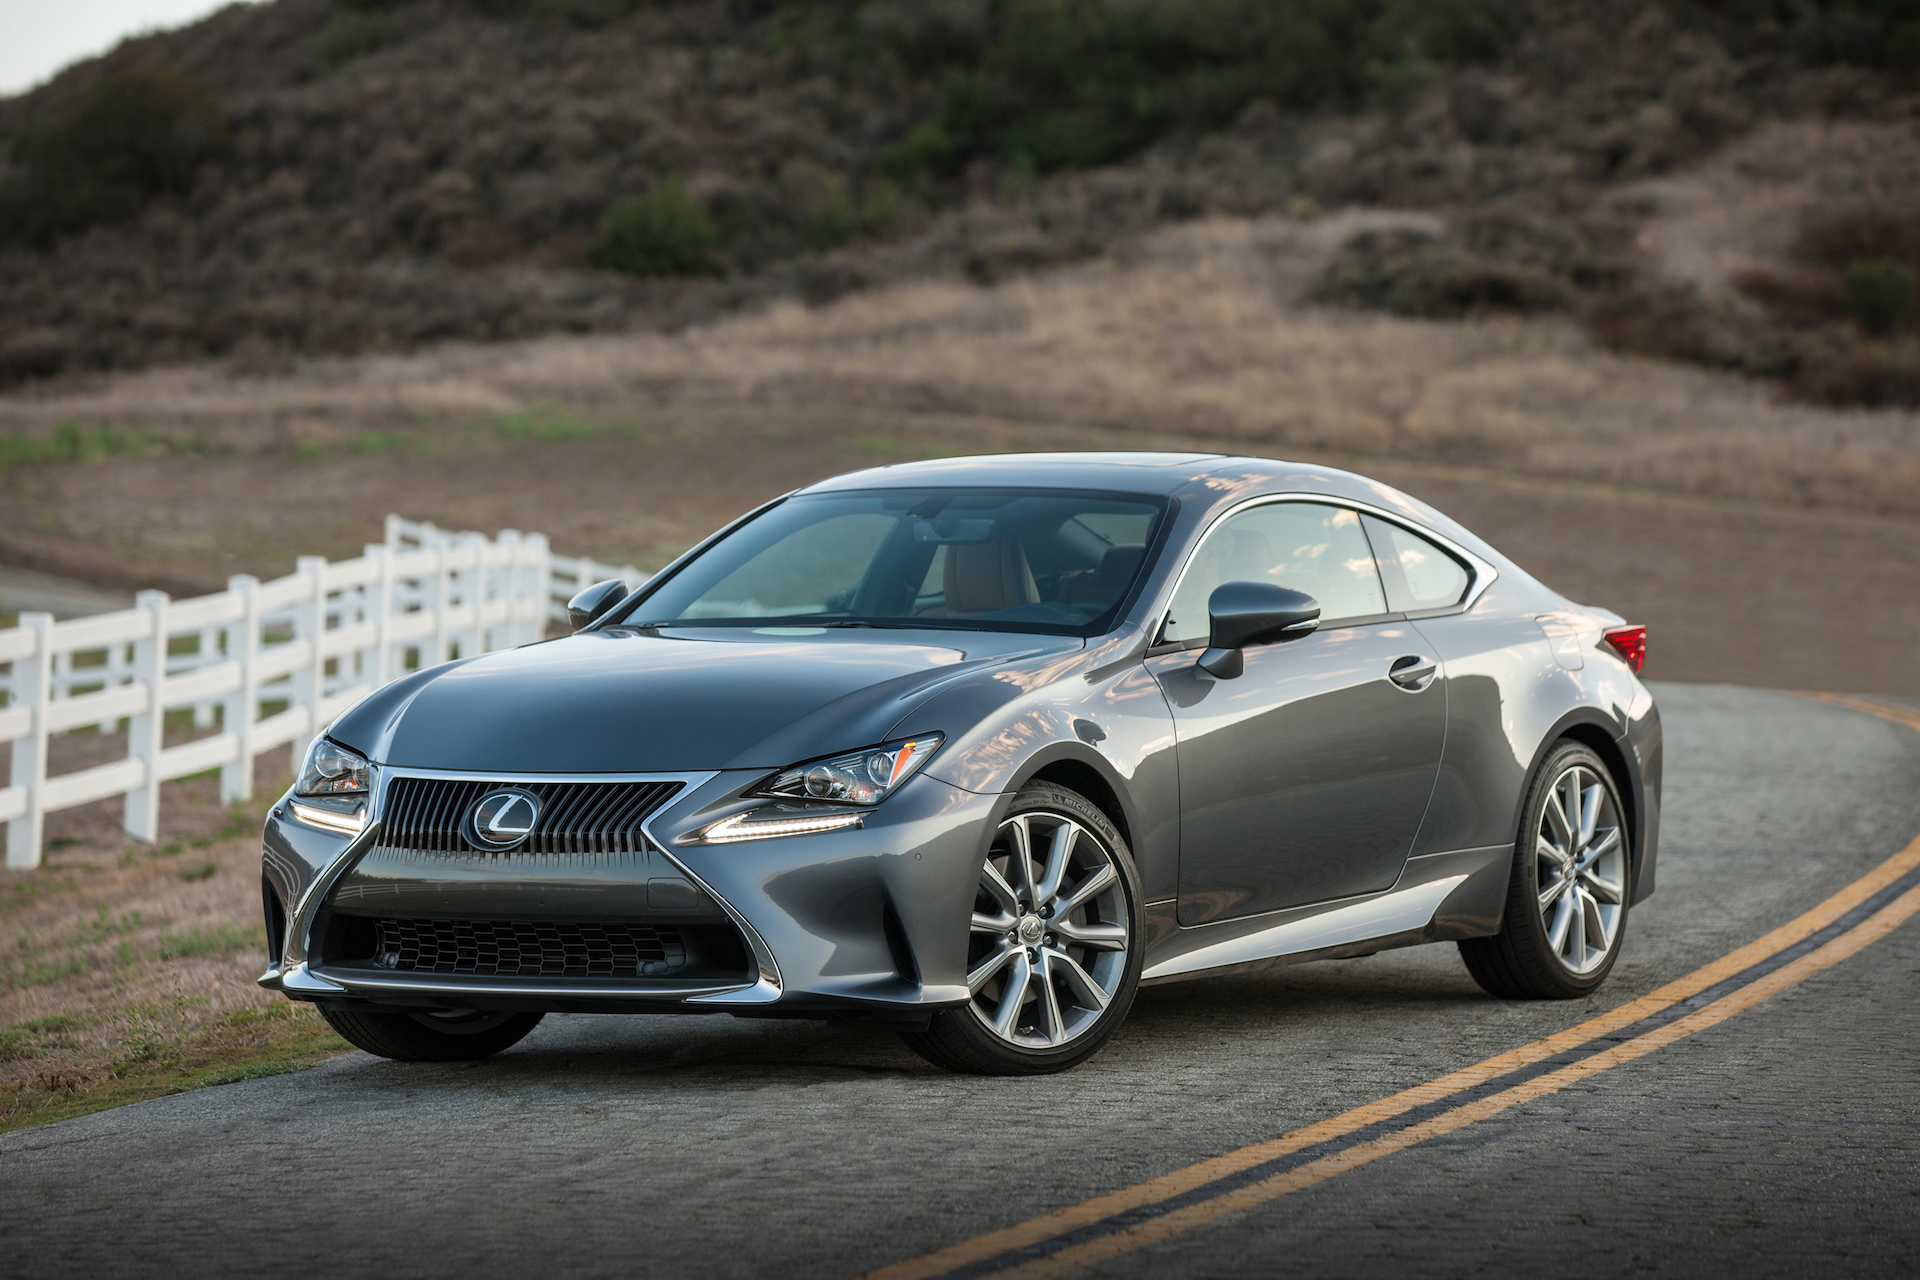 new and used lexus rc prices photos reviews specs the car connection. Black Bedroom Furniture Sets. Home Design Ideas